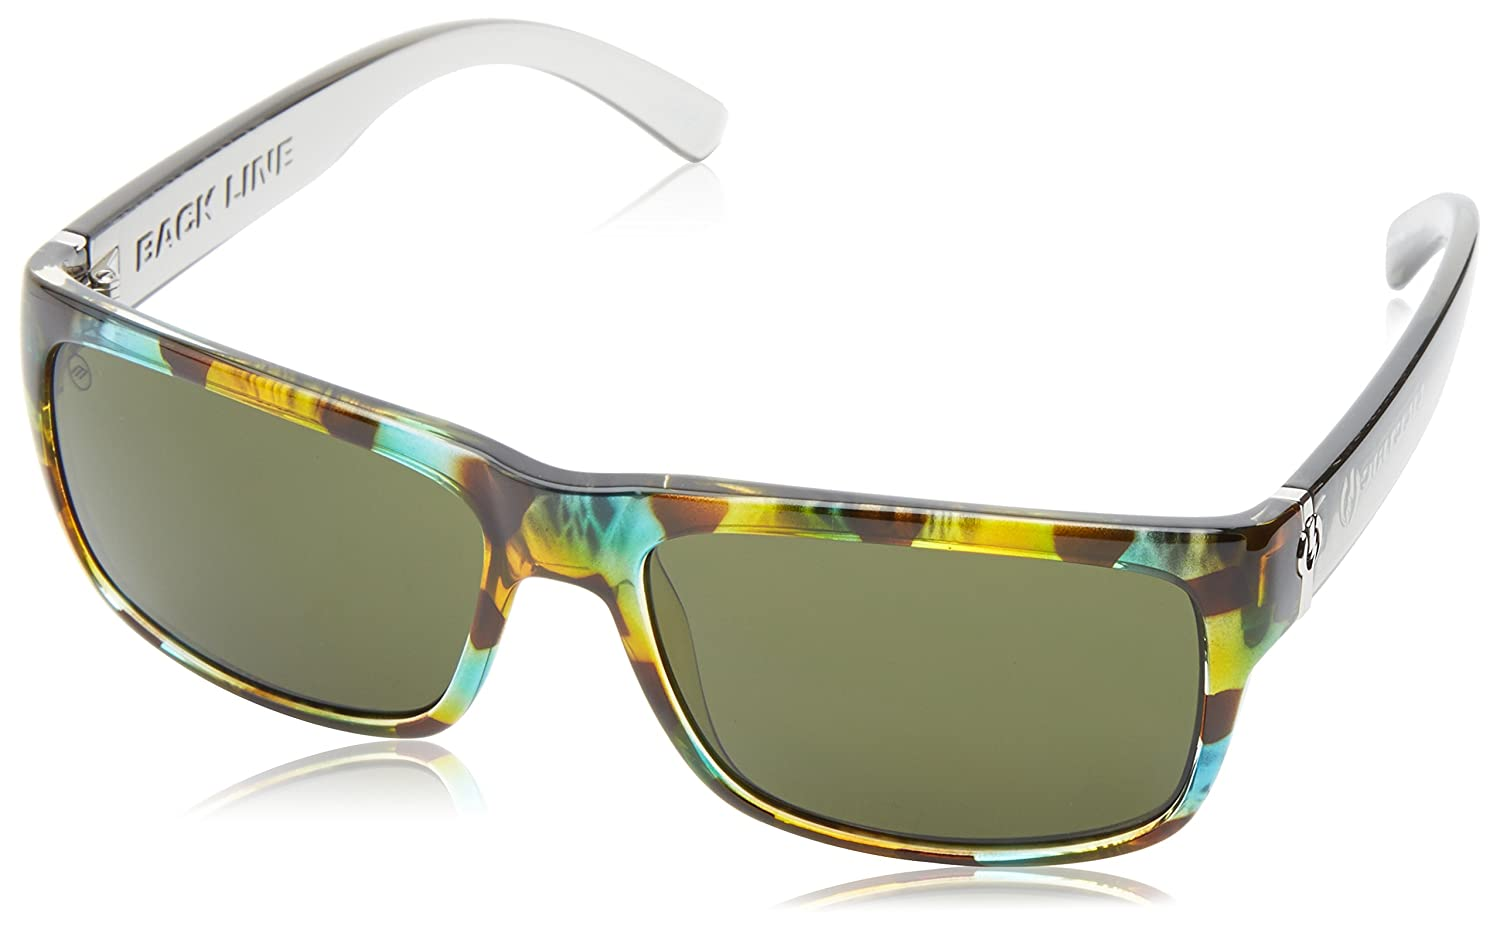 Electric California - Gafas de sol - para mujer: Amazon.es ...